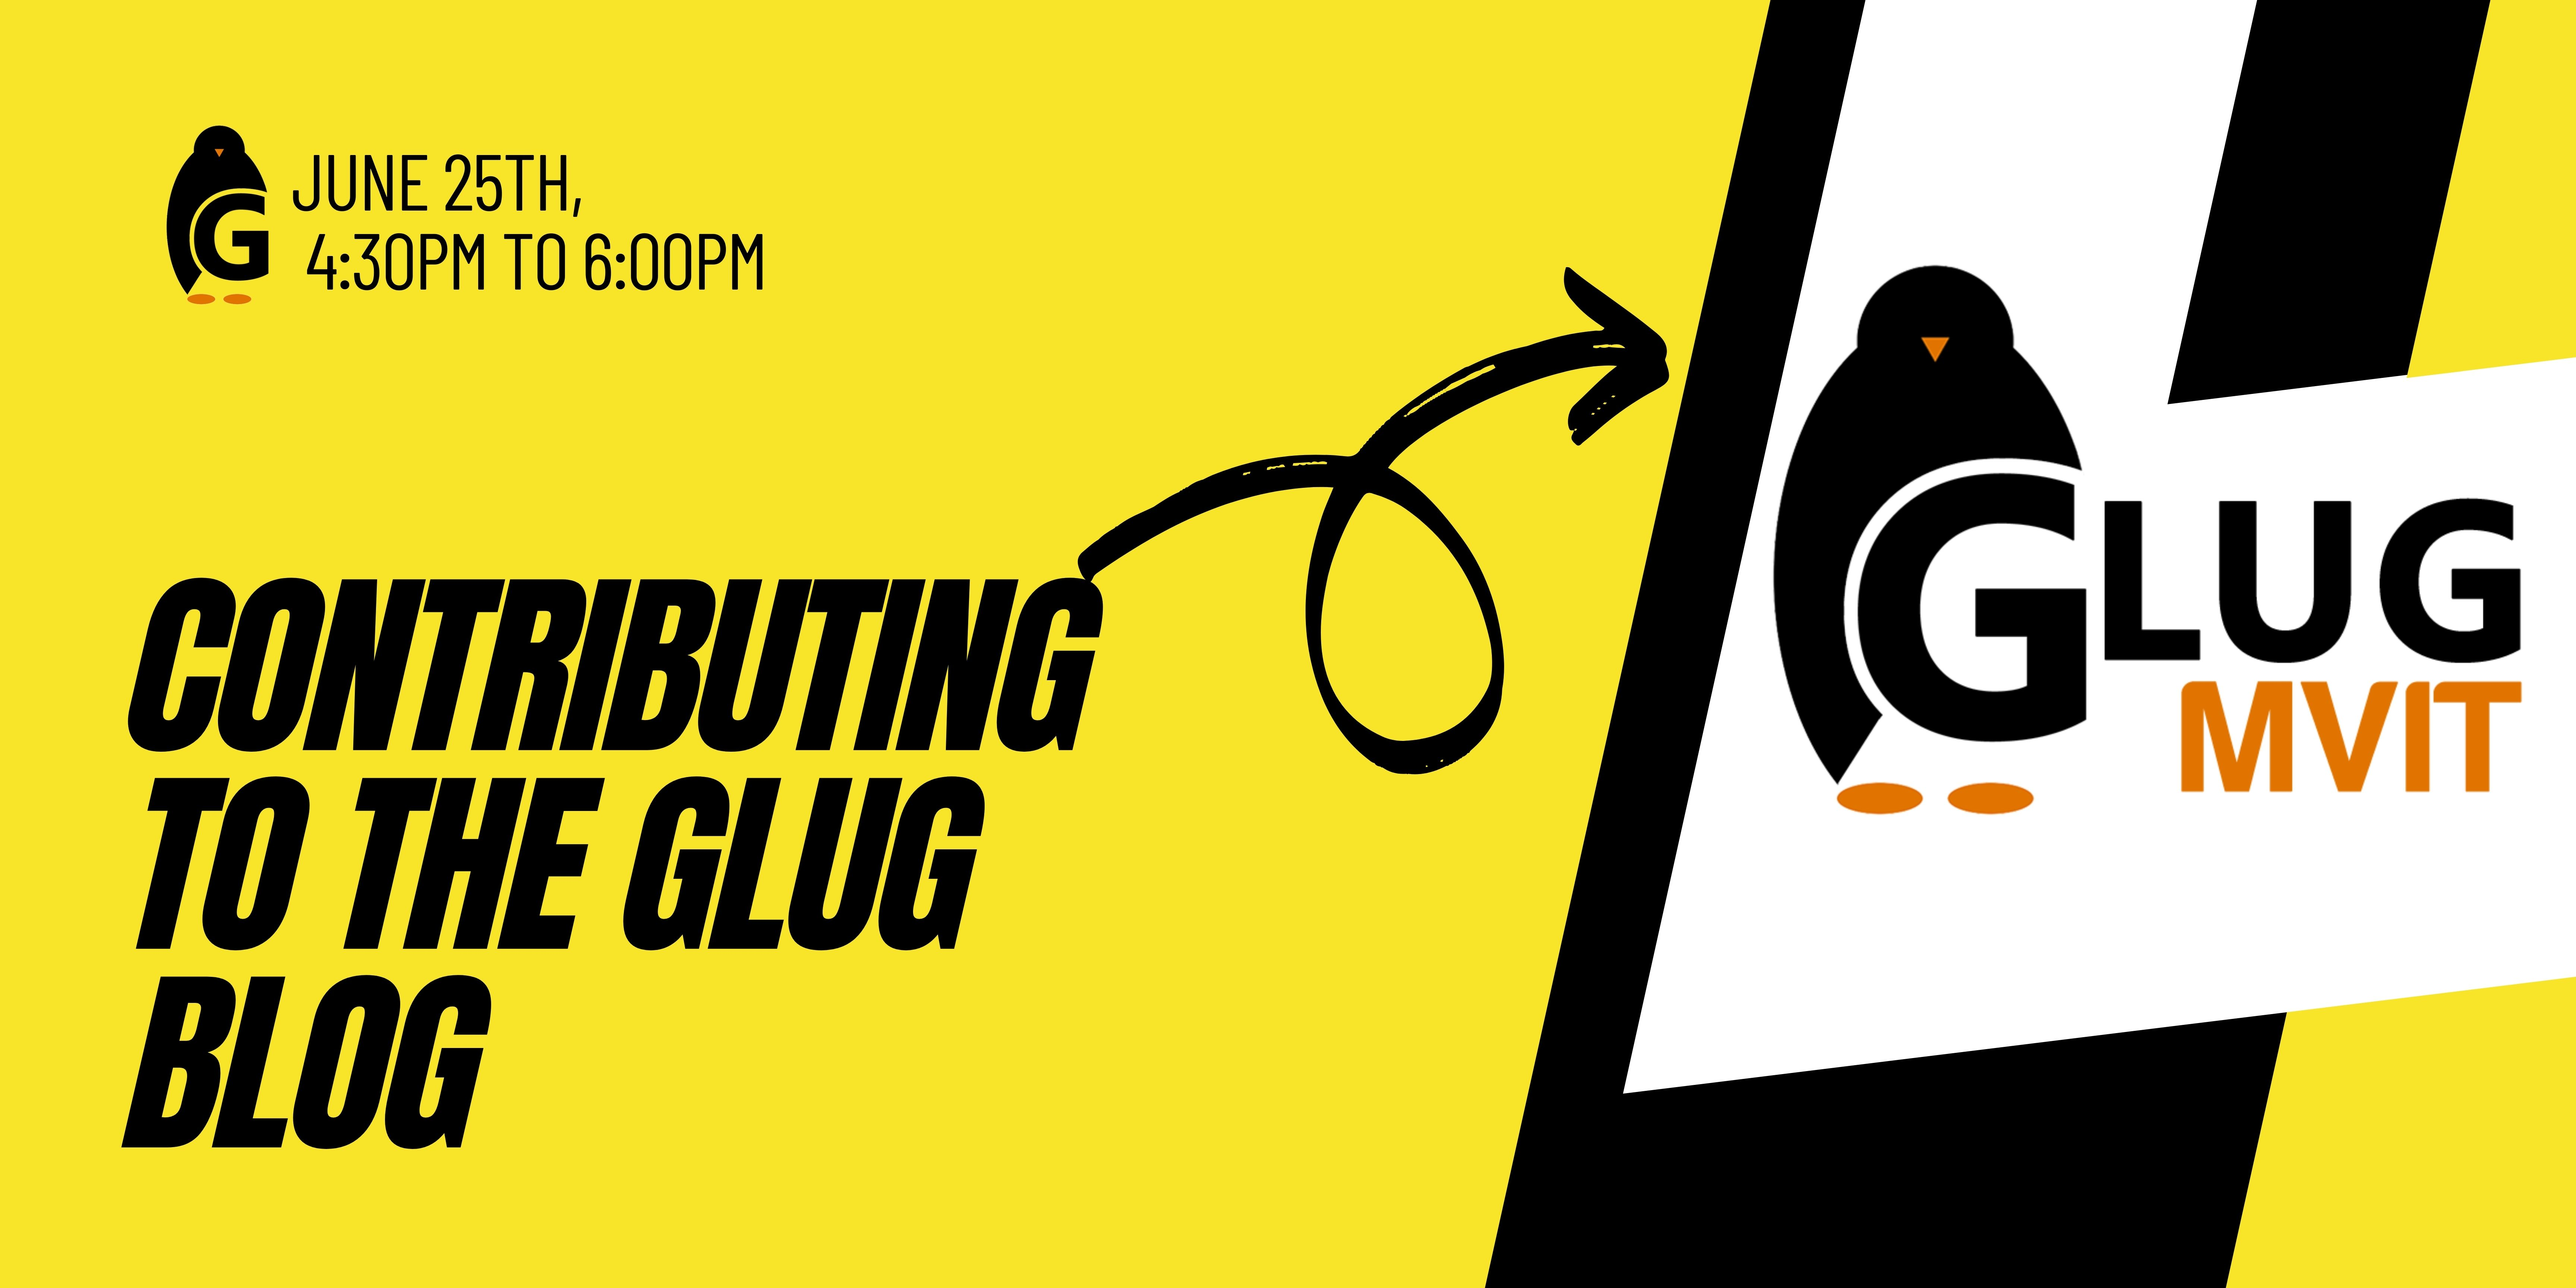 How to contribute to the GLUG Blog